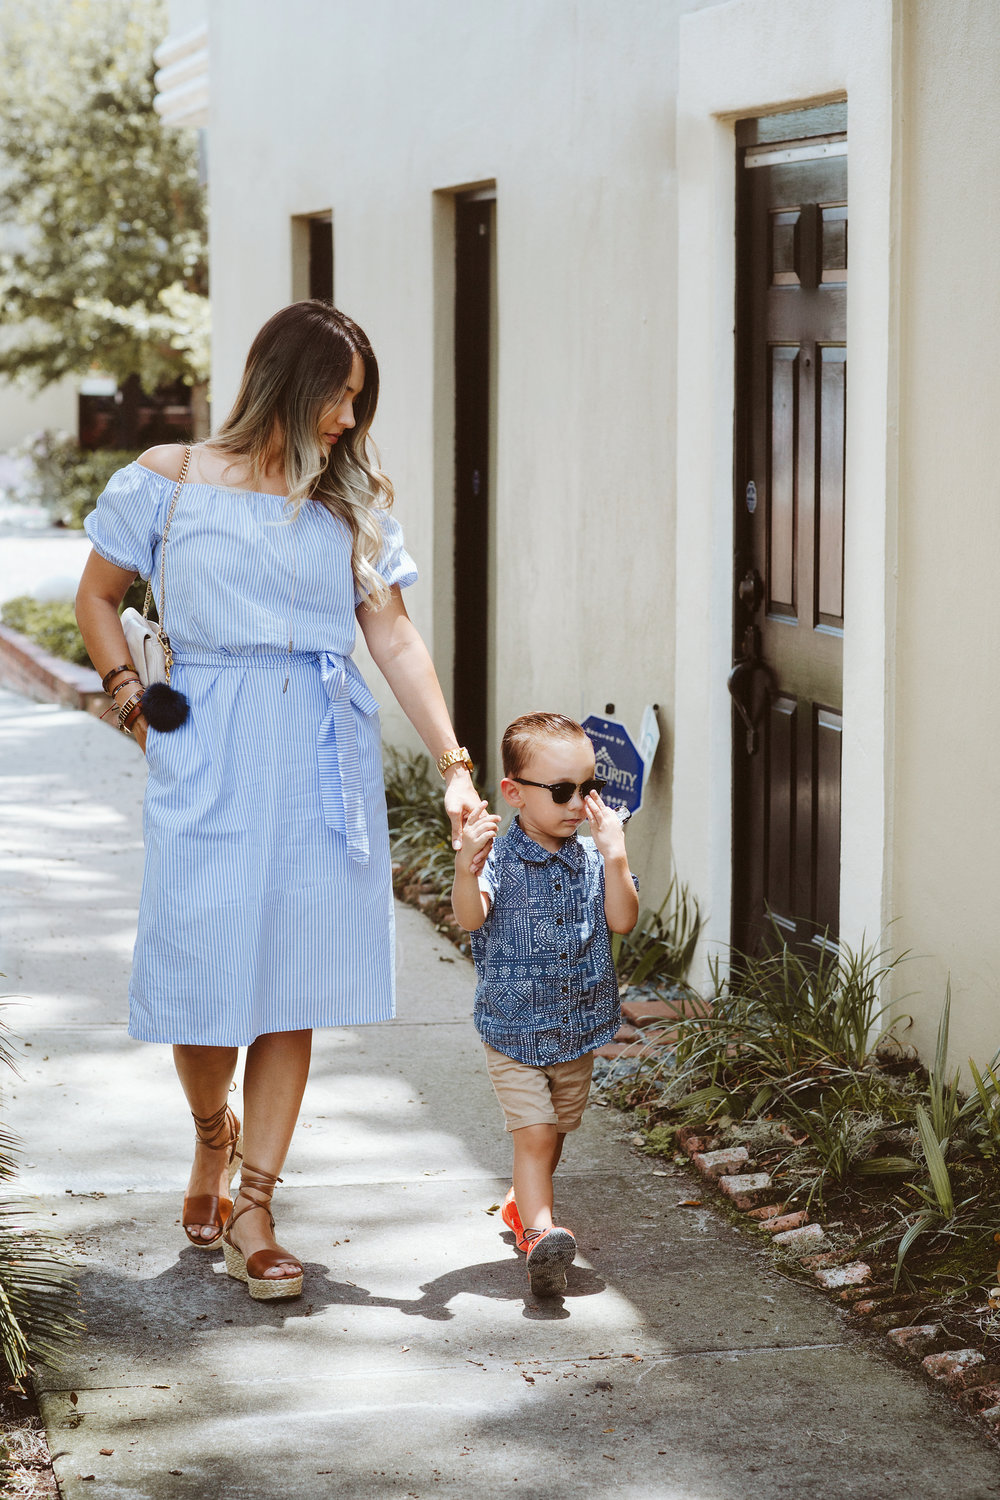 Orlando| Mommy and Me Fashion | Zara | Vanessa Boy | vanessaboy.com |-10.com |final.jpg